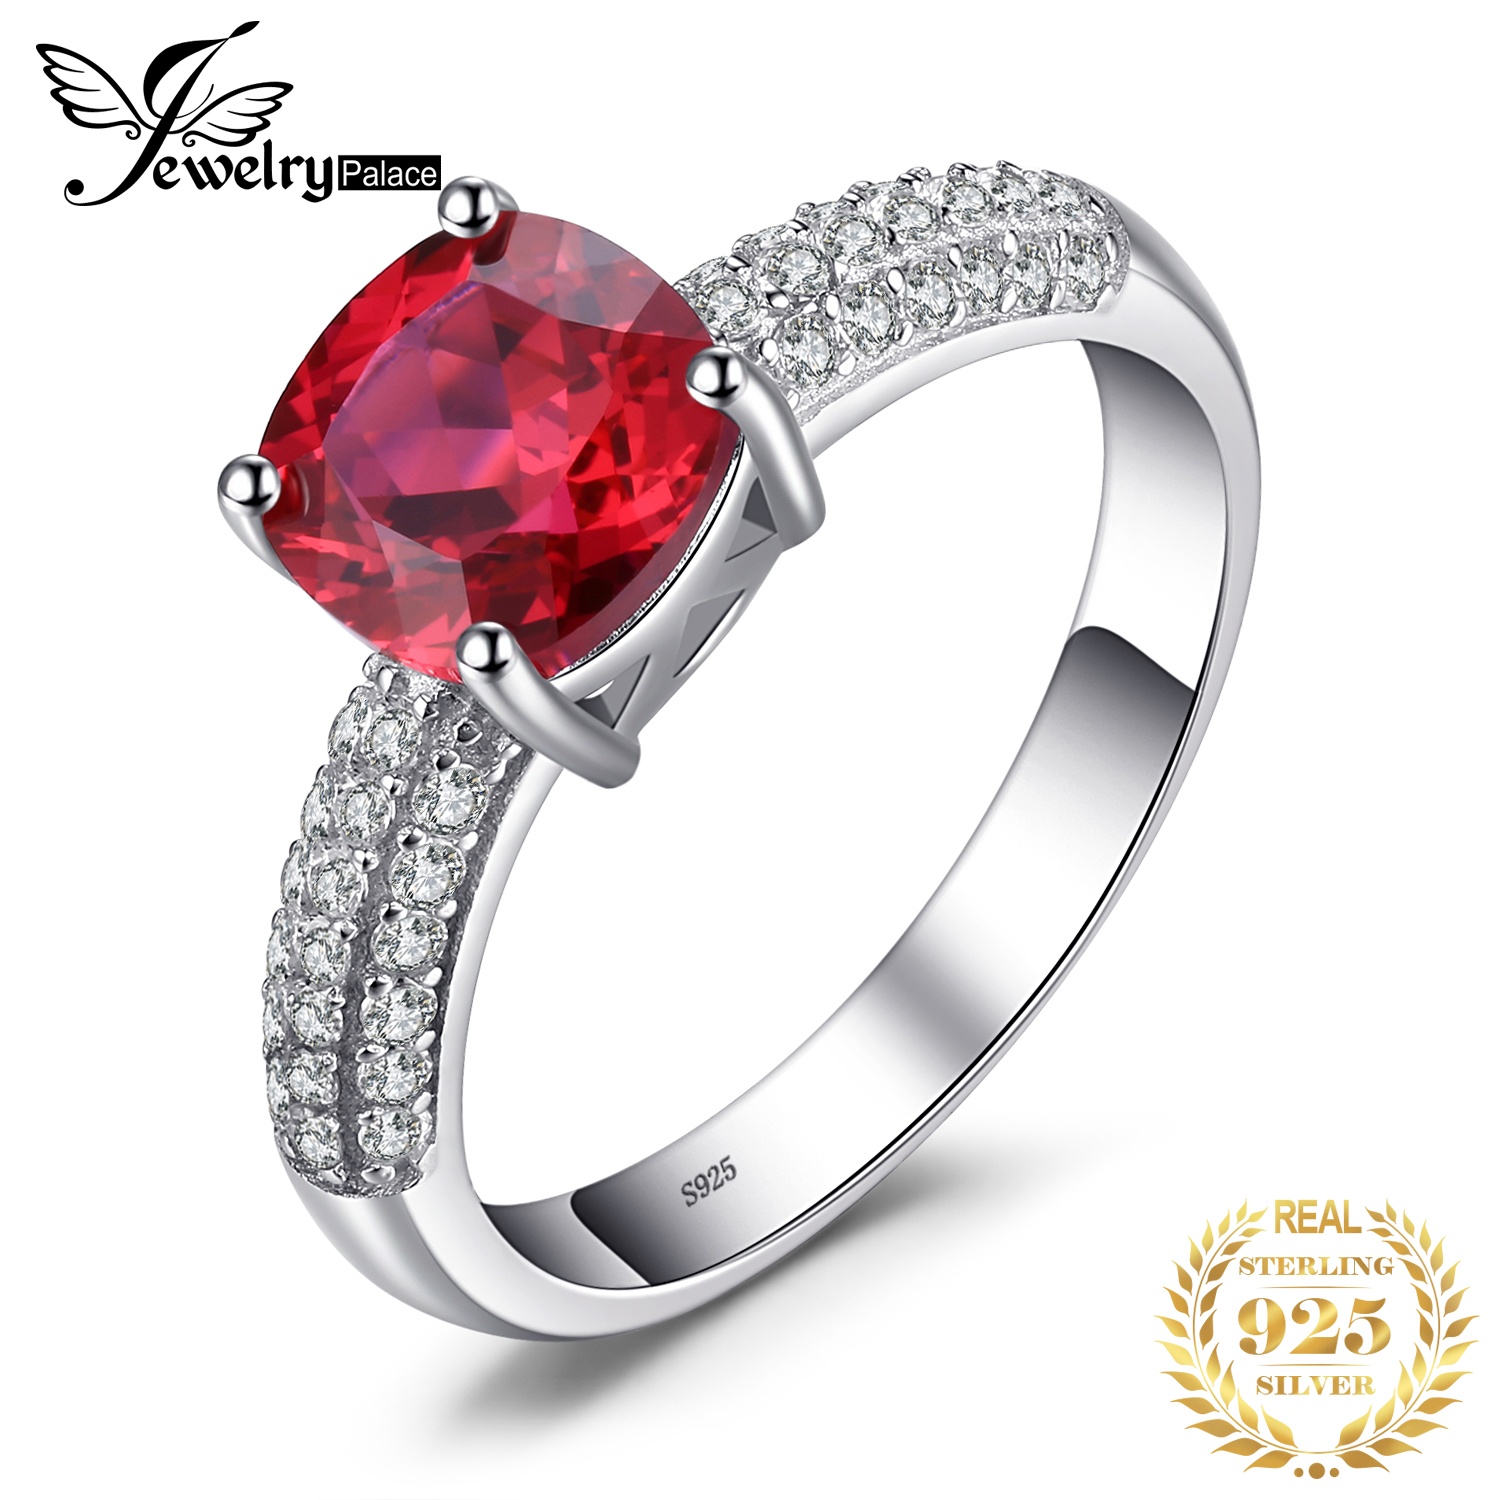 JewelryPalace Cushion Created Red Ruby Ring 925 Sterling Silver Rings For Women Engagement Ring Silver 925 Gemstones Jewelry